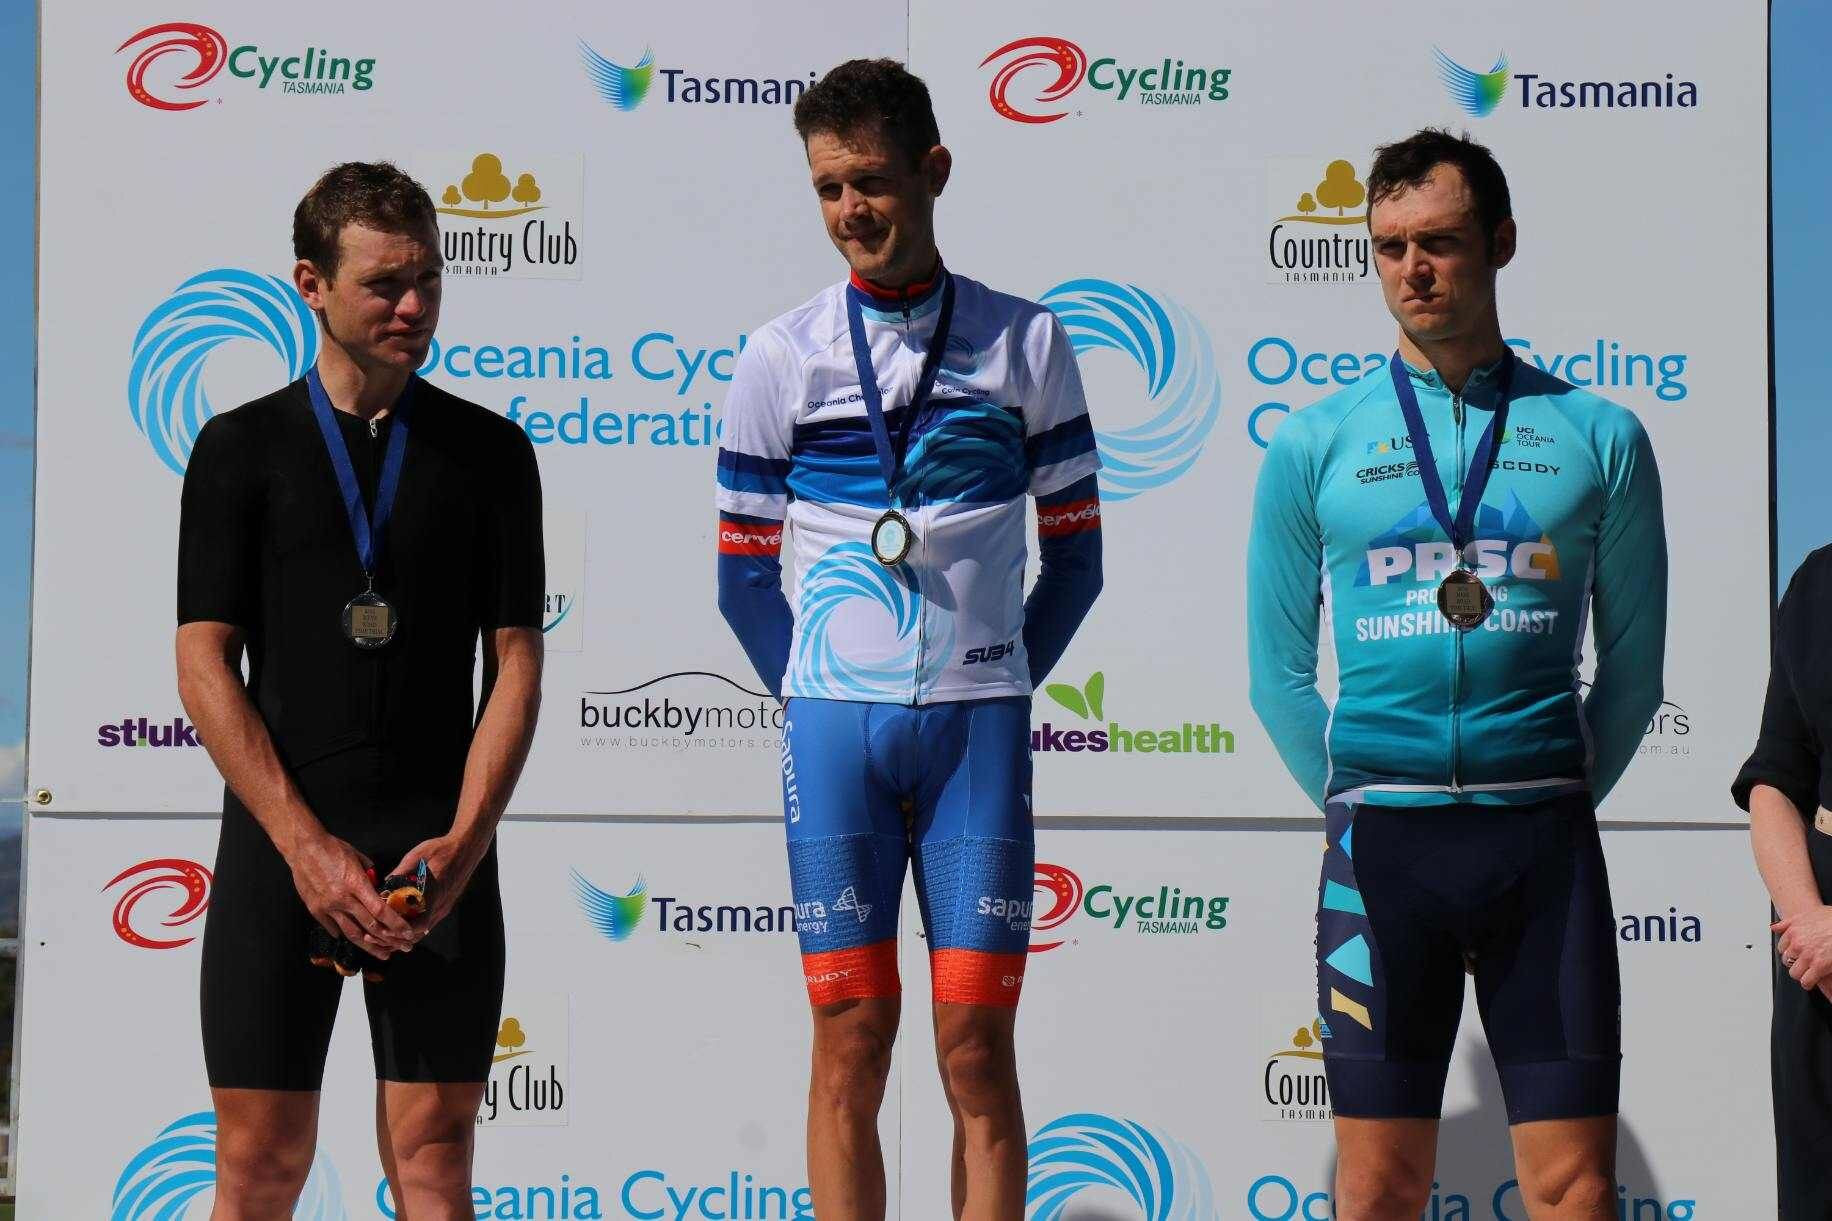 Benjamin Dyball was one of hosts Australia's five gold medallists on the opening day of the 2019 Oceania Road Championships in Tasmania, winning the elite men's time trial event ©Caitlin Johnston